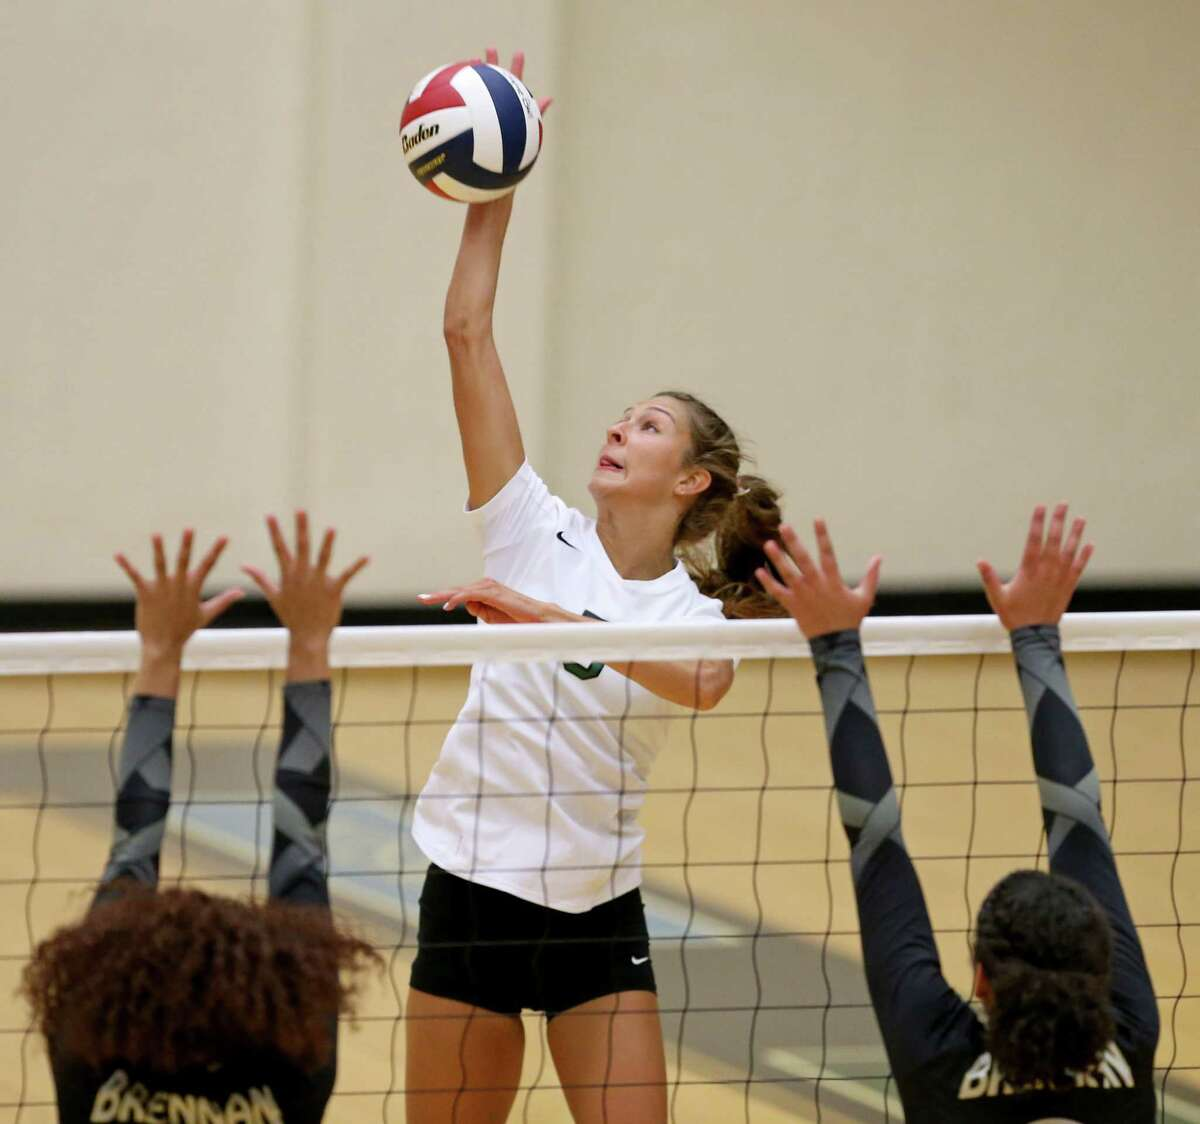 Reagan's Camryn Ennis goes up for an attack against Brennan defenders during their season opening match Monday Aug. 8, 2016 at Littleton Gym. Reagan won 25-17, 25-13, 25-22.